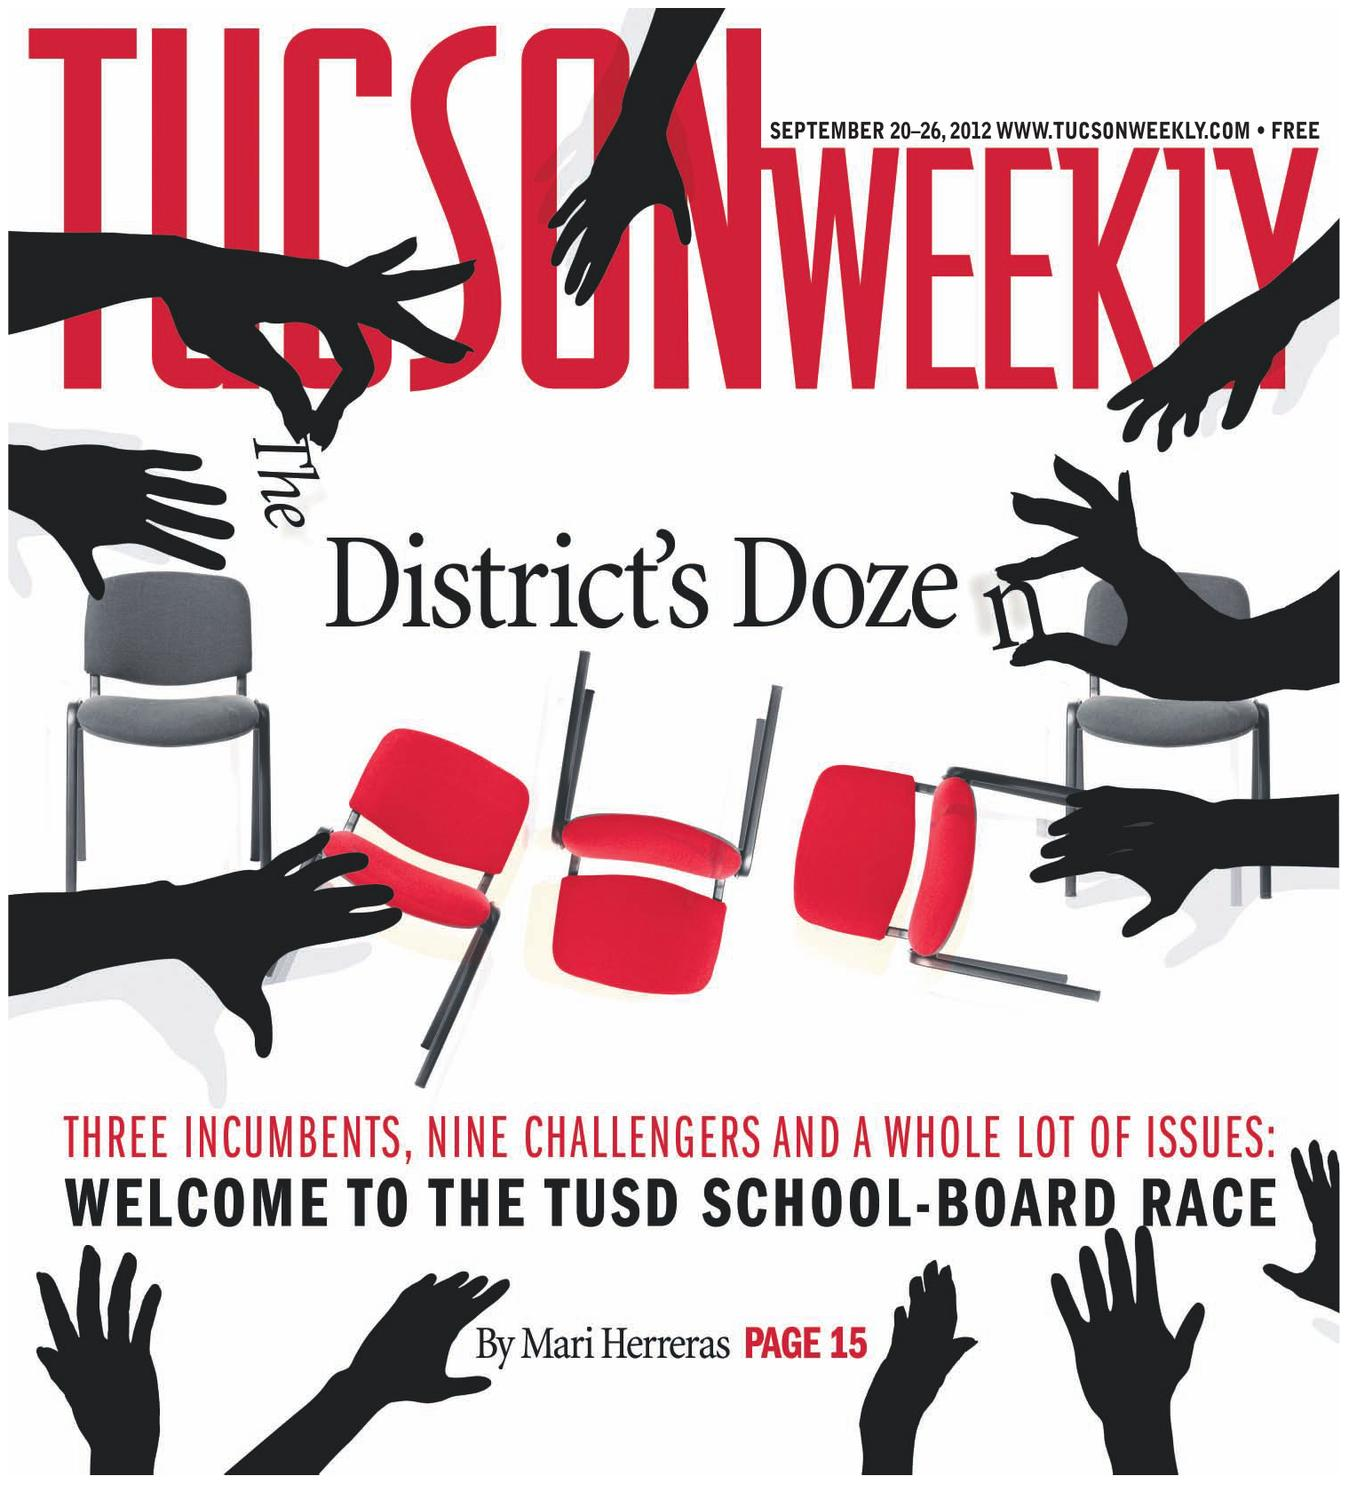 Tucson Weekly 09 20 2012 by Tucson Weekly issuu